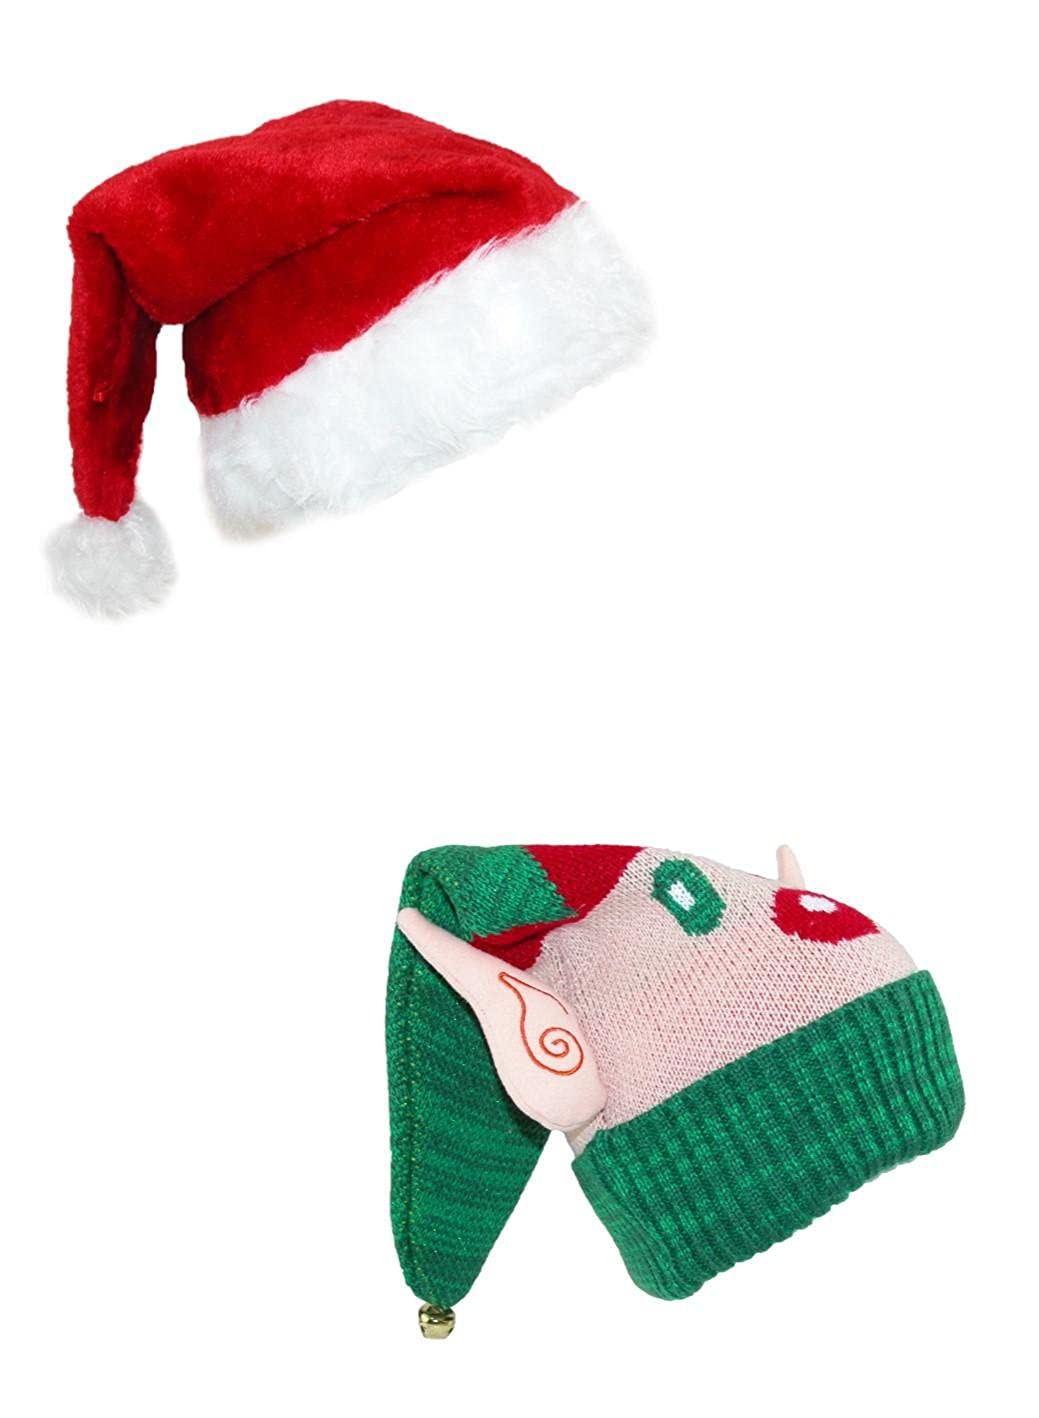 CTM® Santa and Elf Novelty Hats (Pack of 2) Red/Green JH-20407KIT2-RED